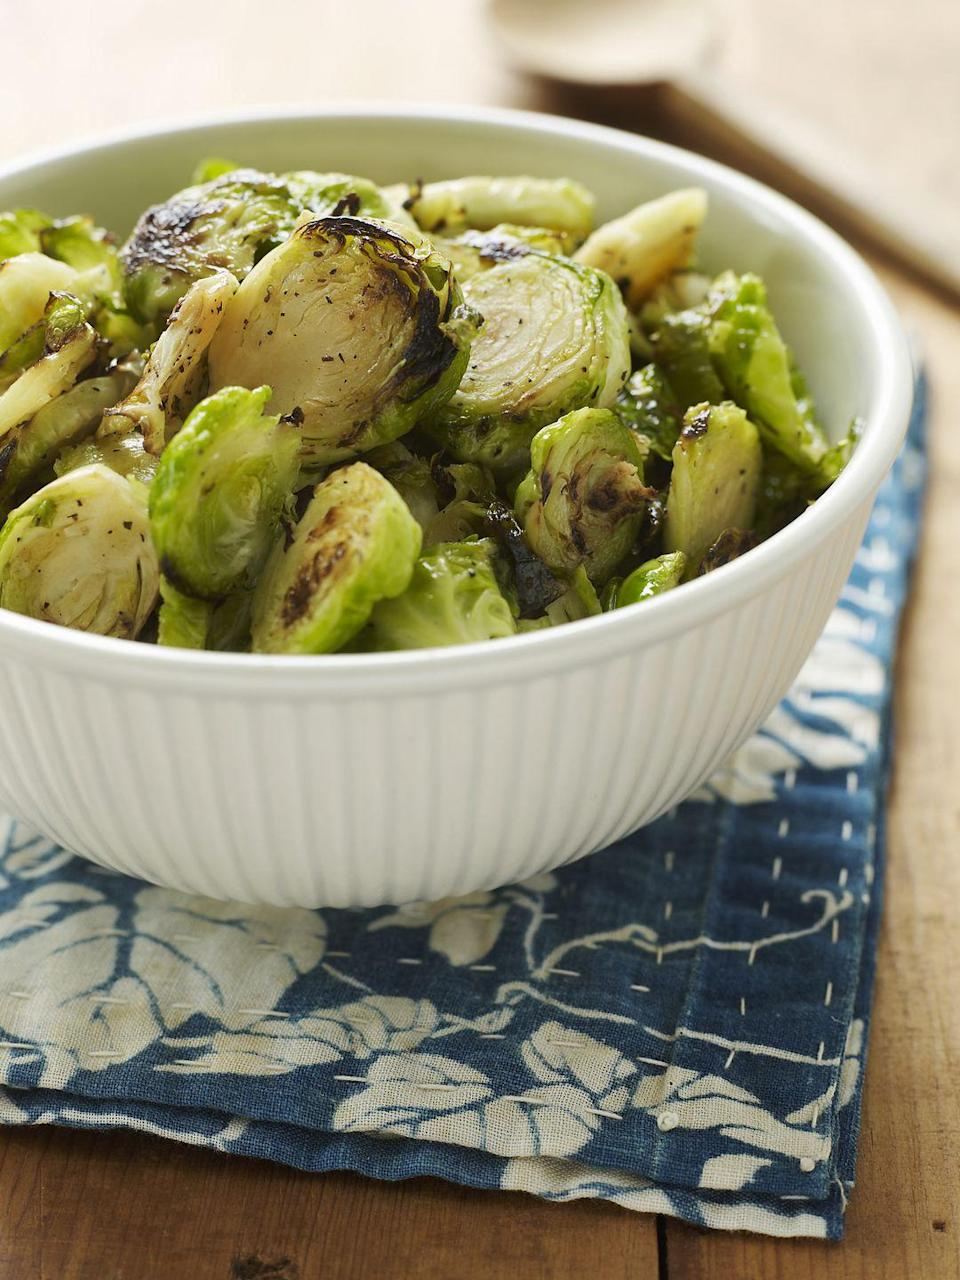 <p>Despite what popular culture makes them out to be, Brussels sprouts are incredibly tasty, especially when you roast them and coat them in a little olive oil and salt. Brussels sprouts also qualify as one of the many veggies that you can eat on while on Whole30. </p>